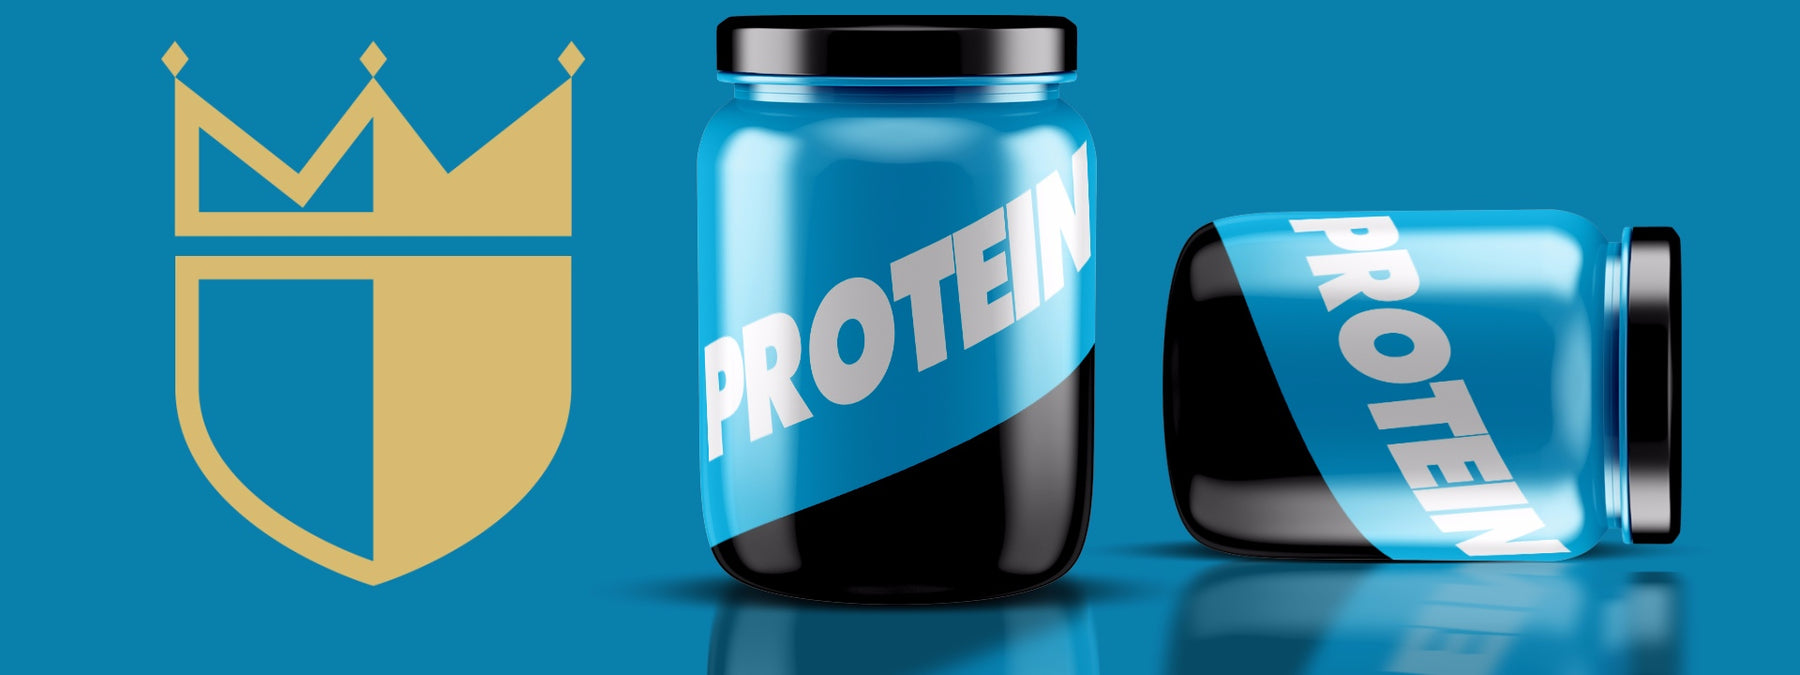 Ultimate Protein Blend War: Which Brand is King?